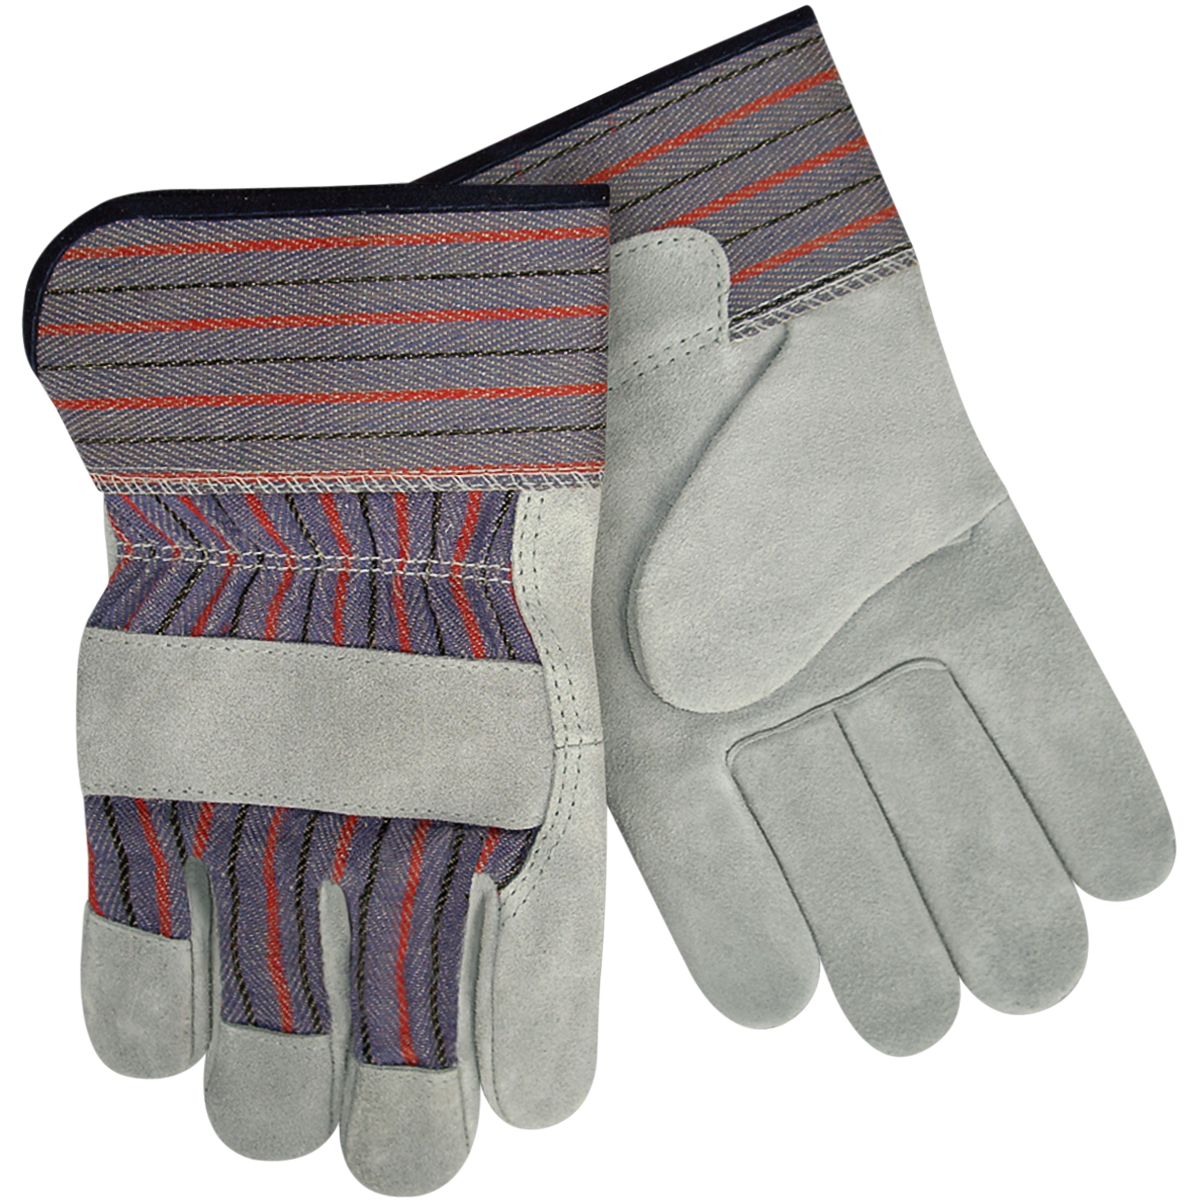 3pk wolverine leather work gloves extra large - Wolverine Premium Grain Leather Gloves 3 Pack Large Work